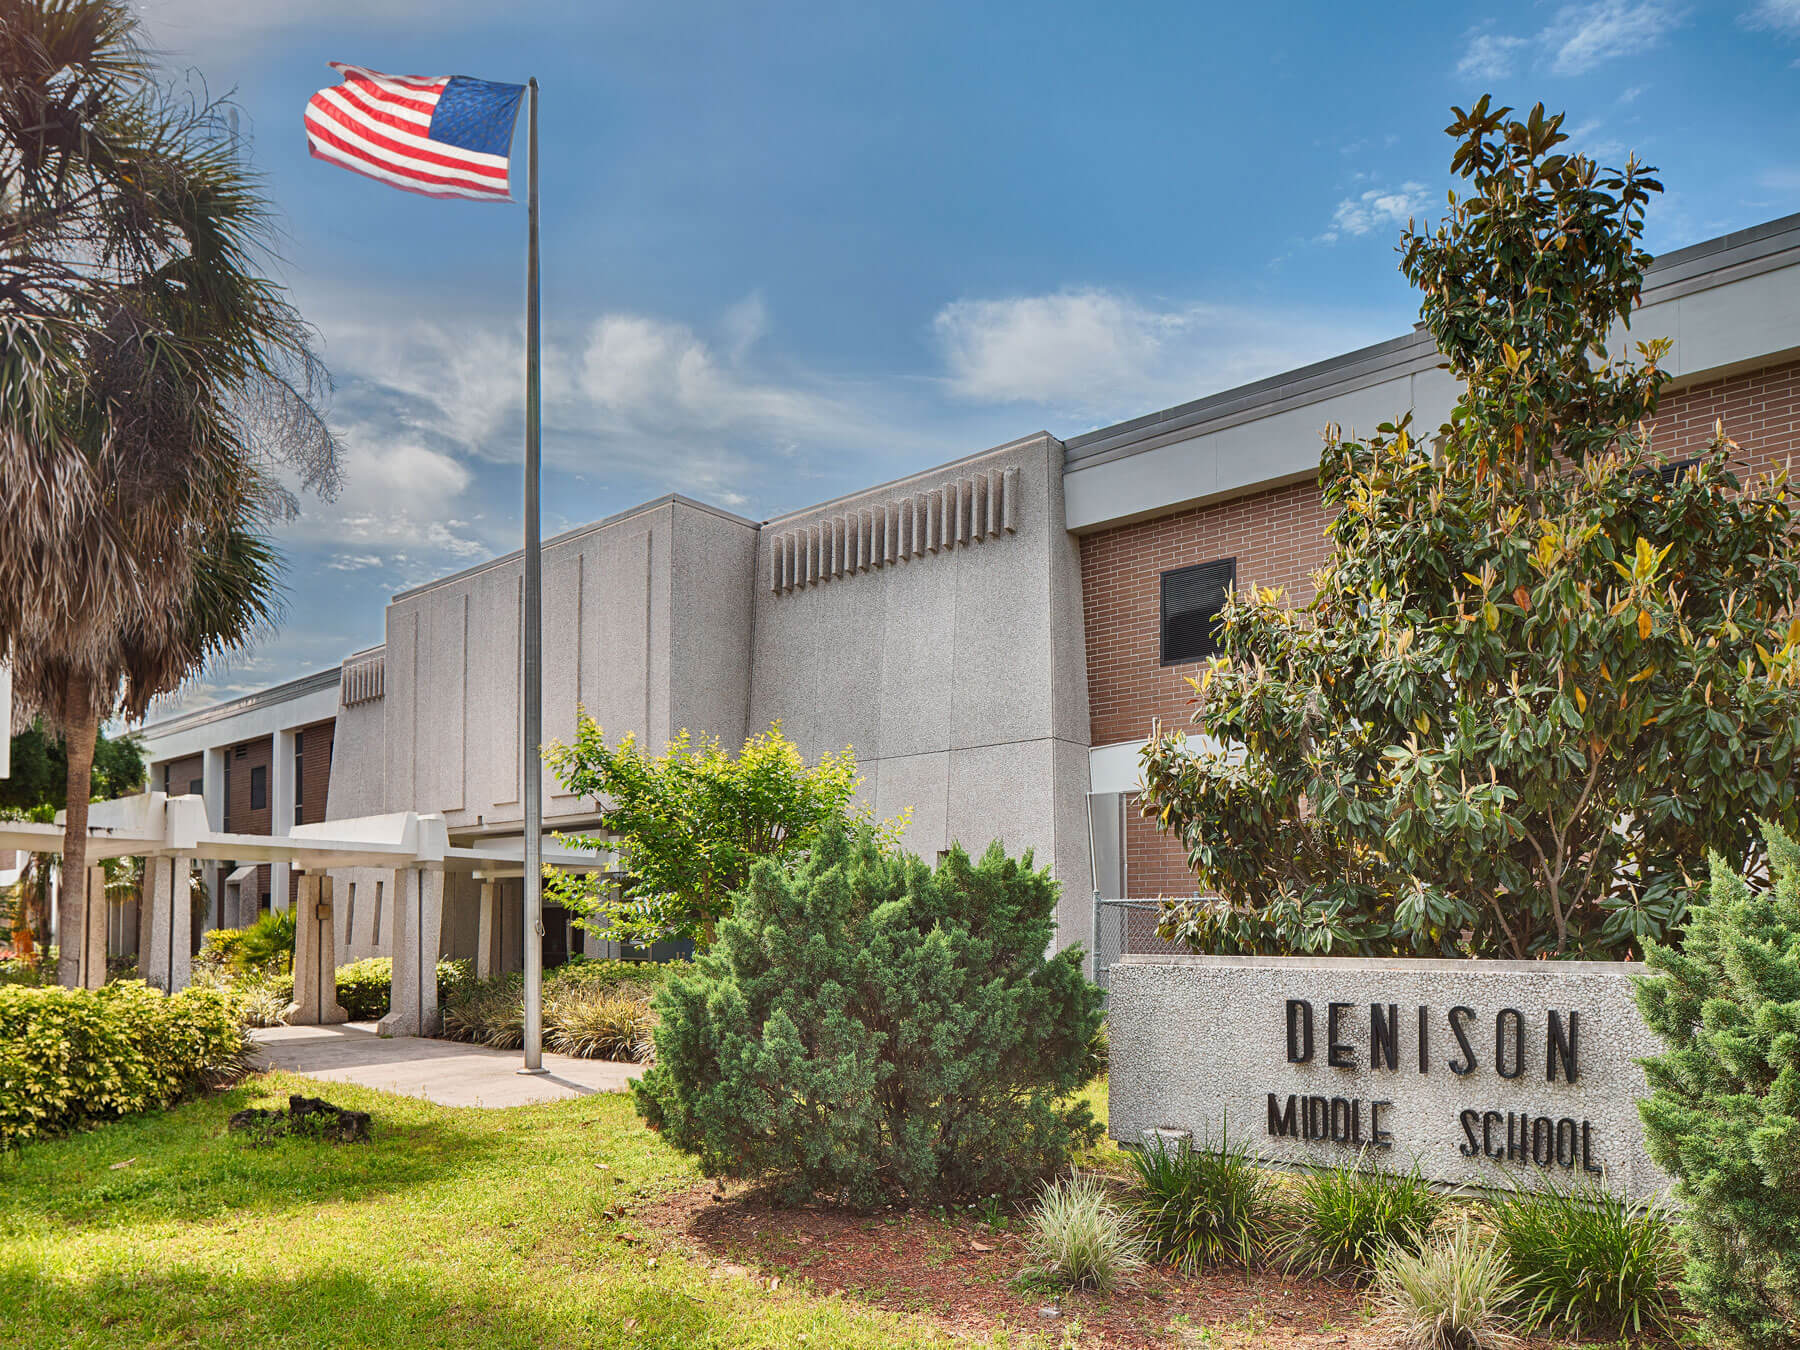 Front of Denison Middle School in Winter Haven, Florida.